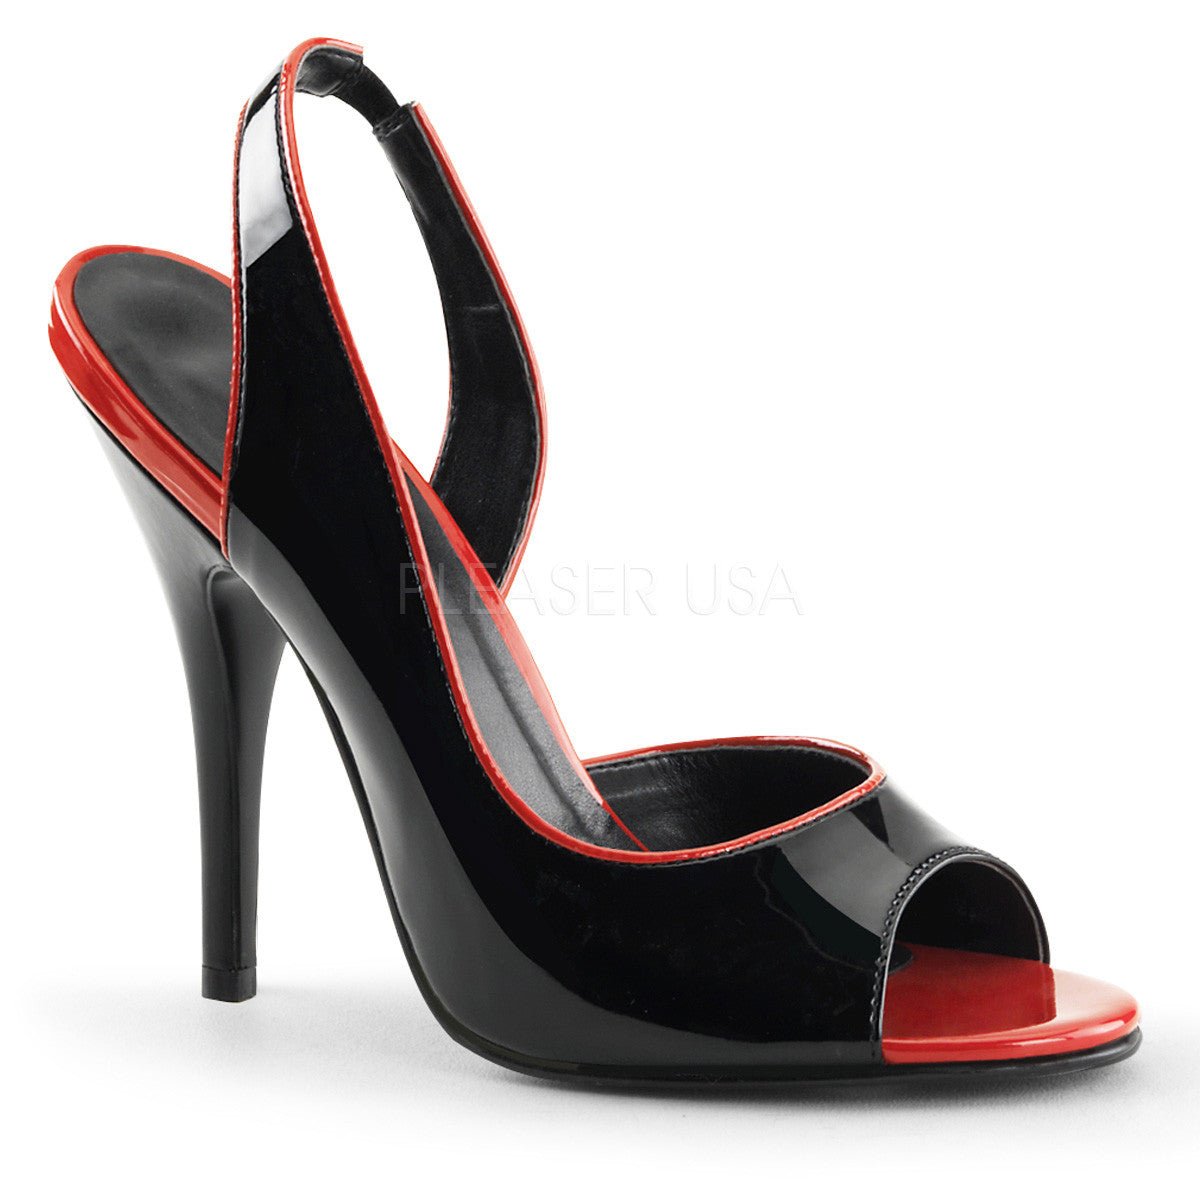 Pleaser SEDUCE-117 Black-Red Patent Sling Back Sandals - Shoecup.com